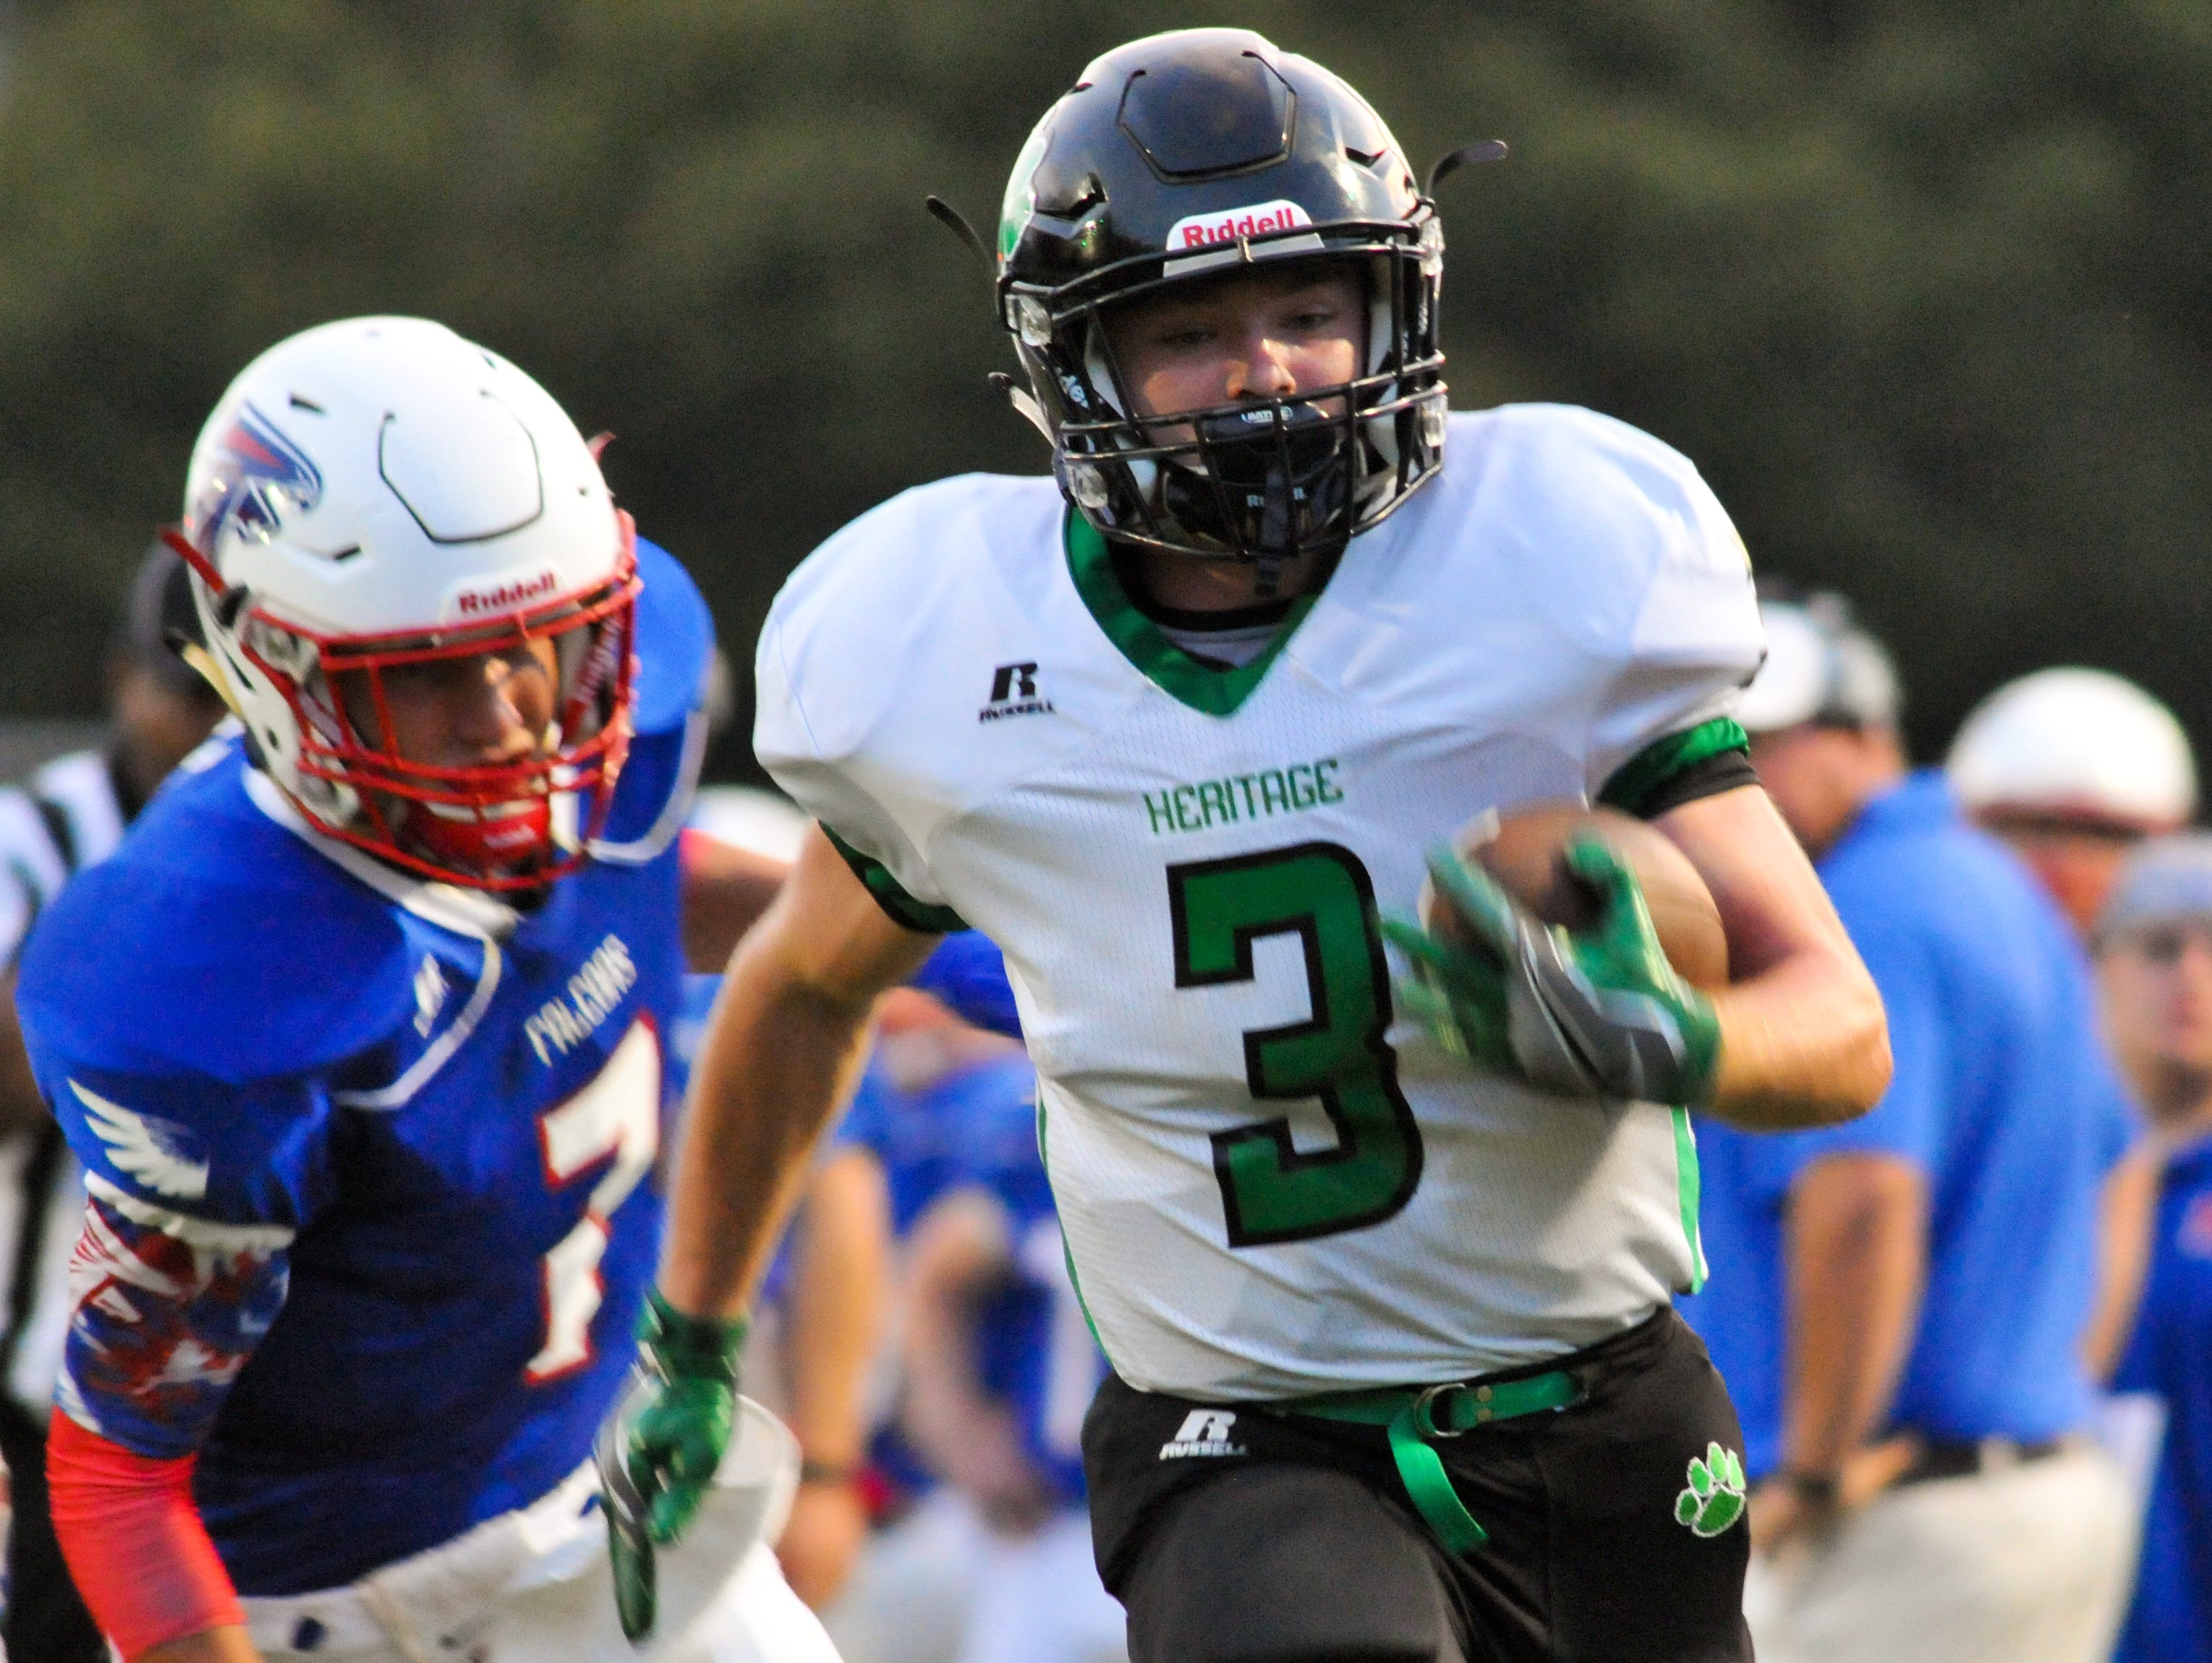 Junior Denton (3) carries the ball for Mountain Heritage in Friday's win at West Henderson.